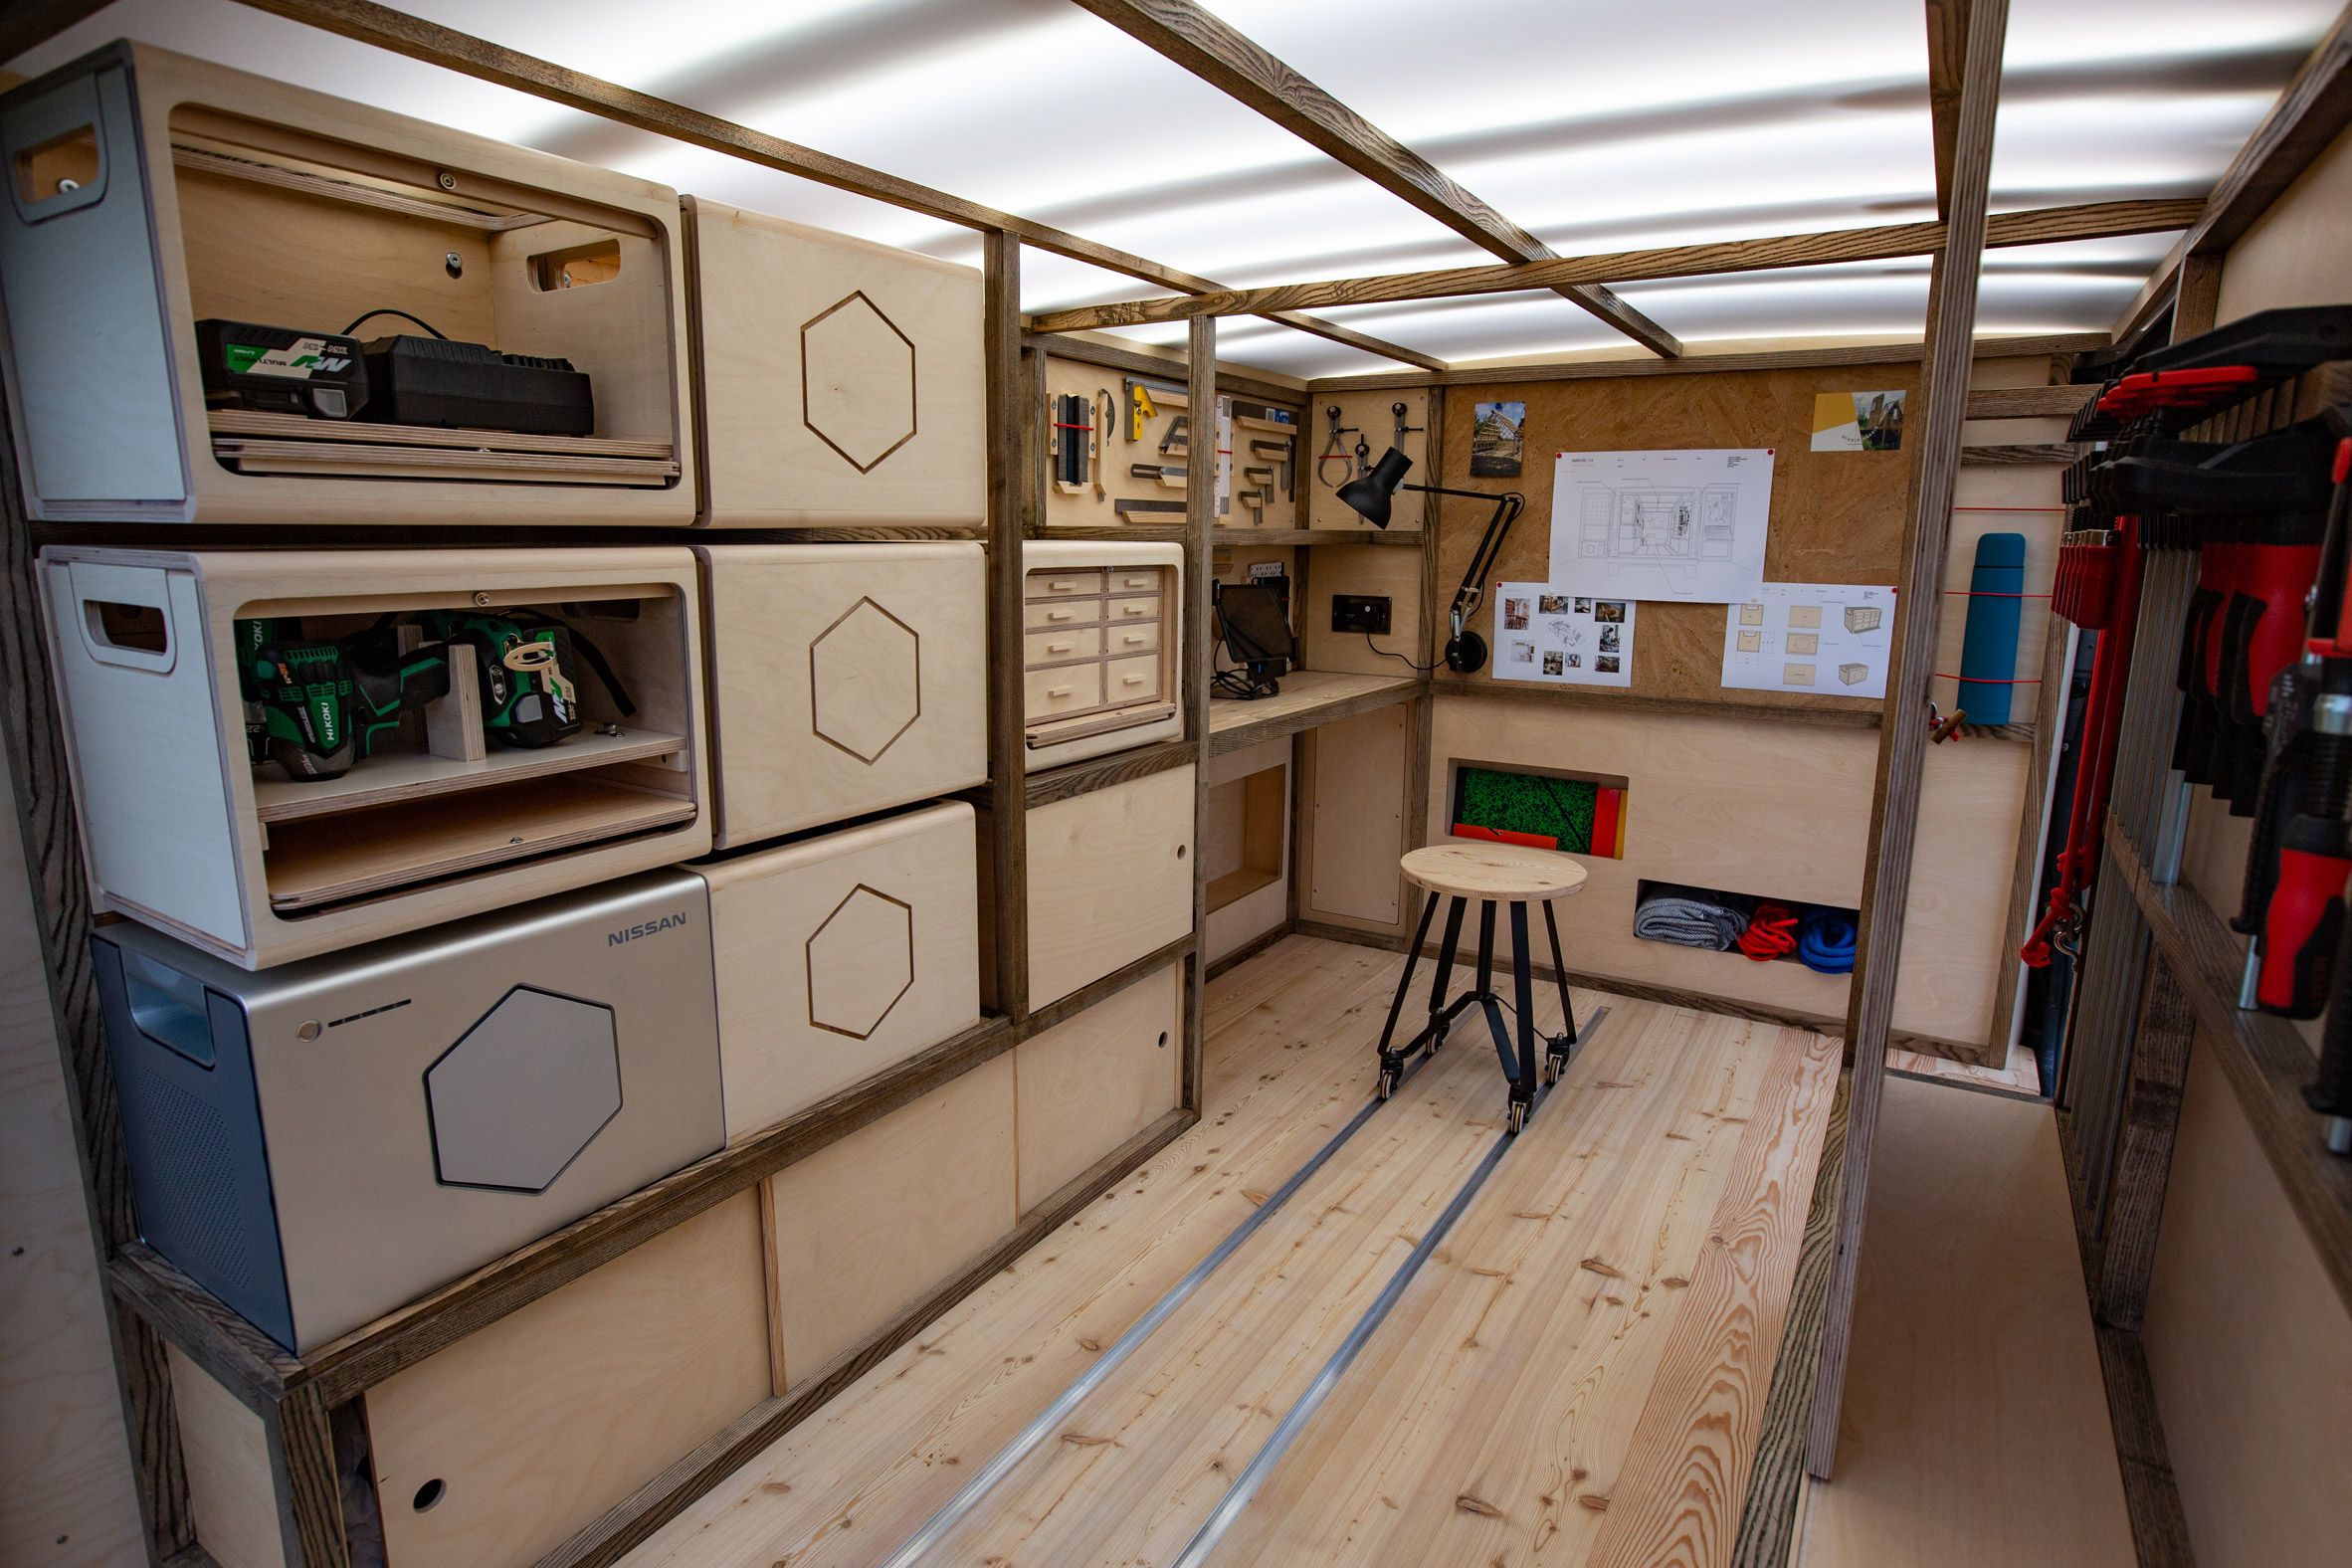 Nissan S Nv300 Concept Van Is A Mobile Hub For Artisans And